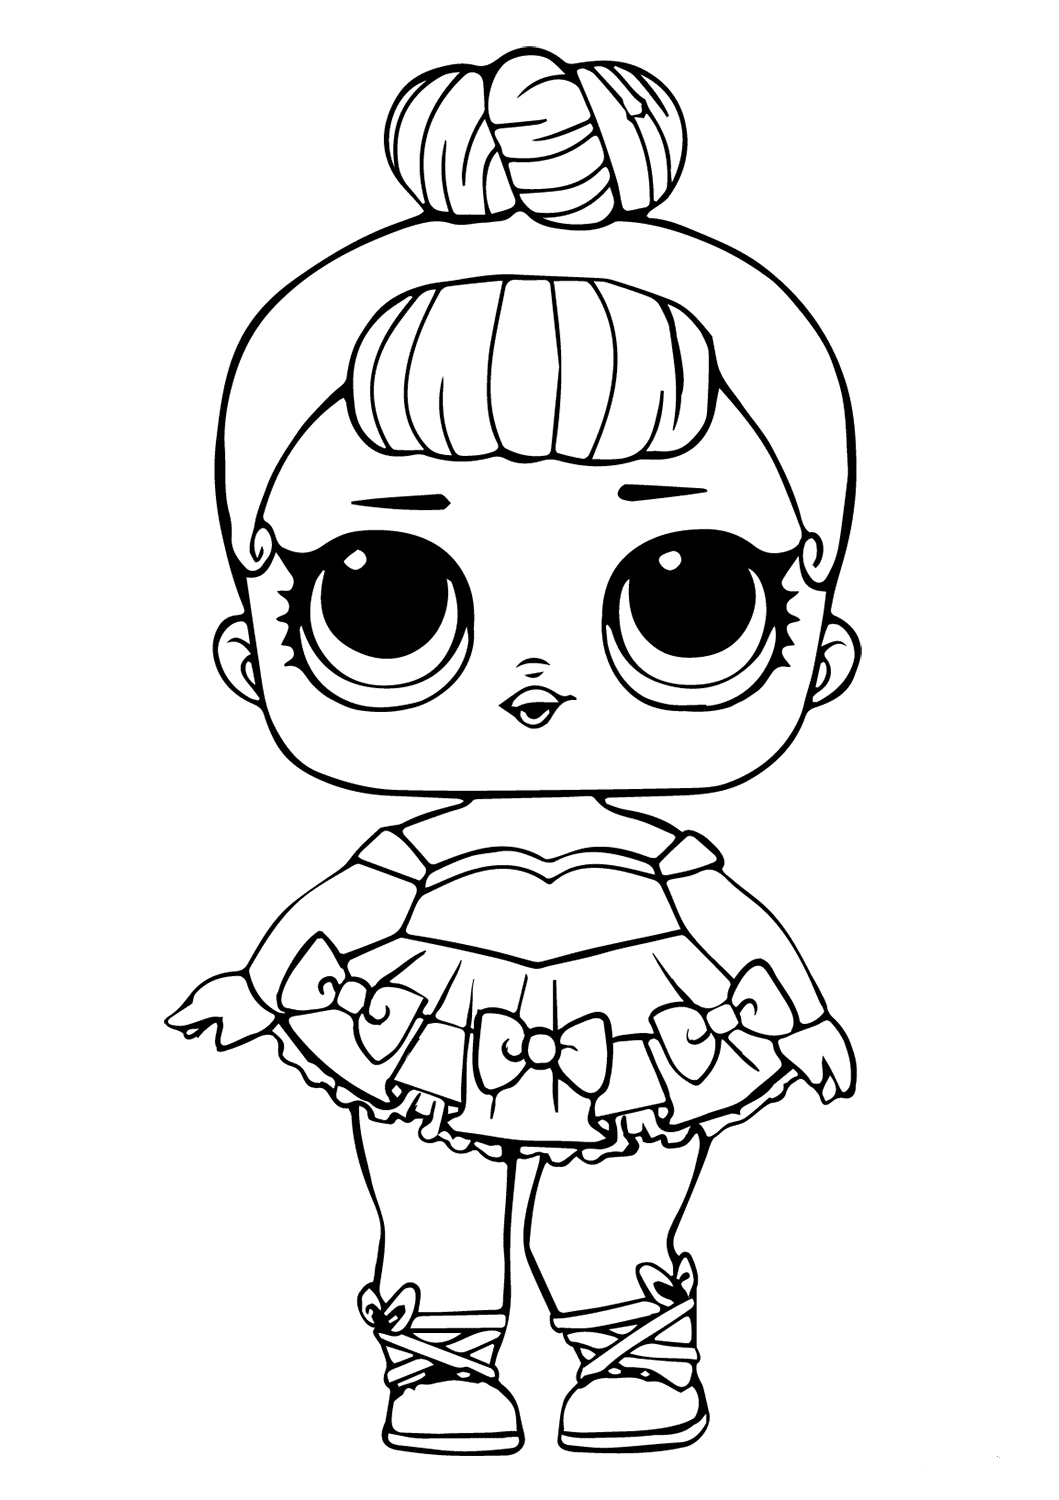 Coloring Lol Videos How To Draw Lol Surprise Dolls Coloring